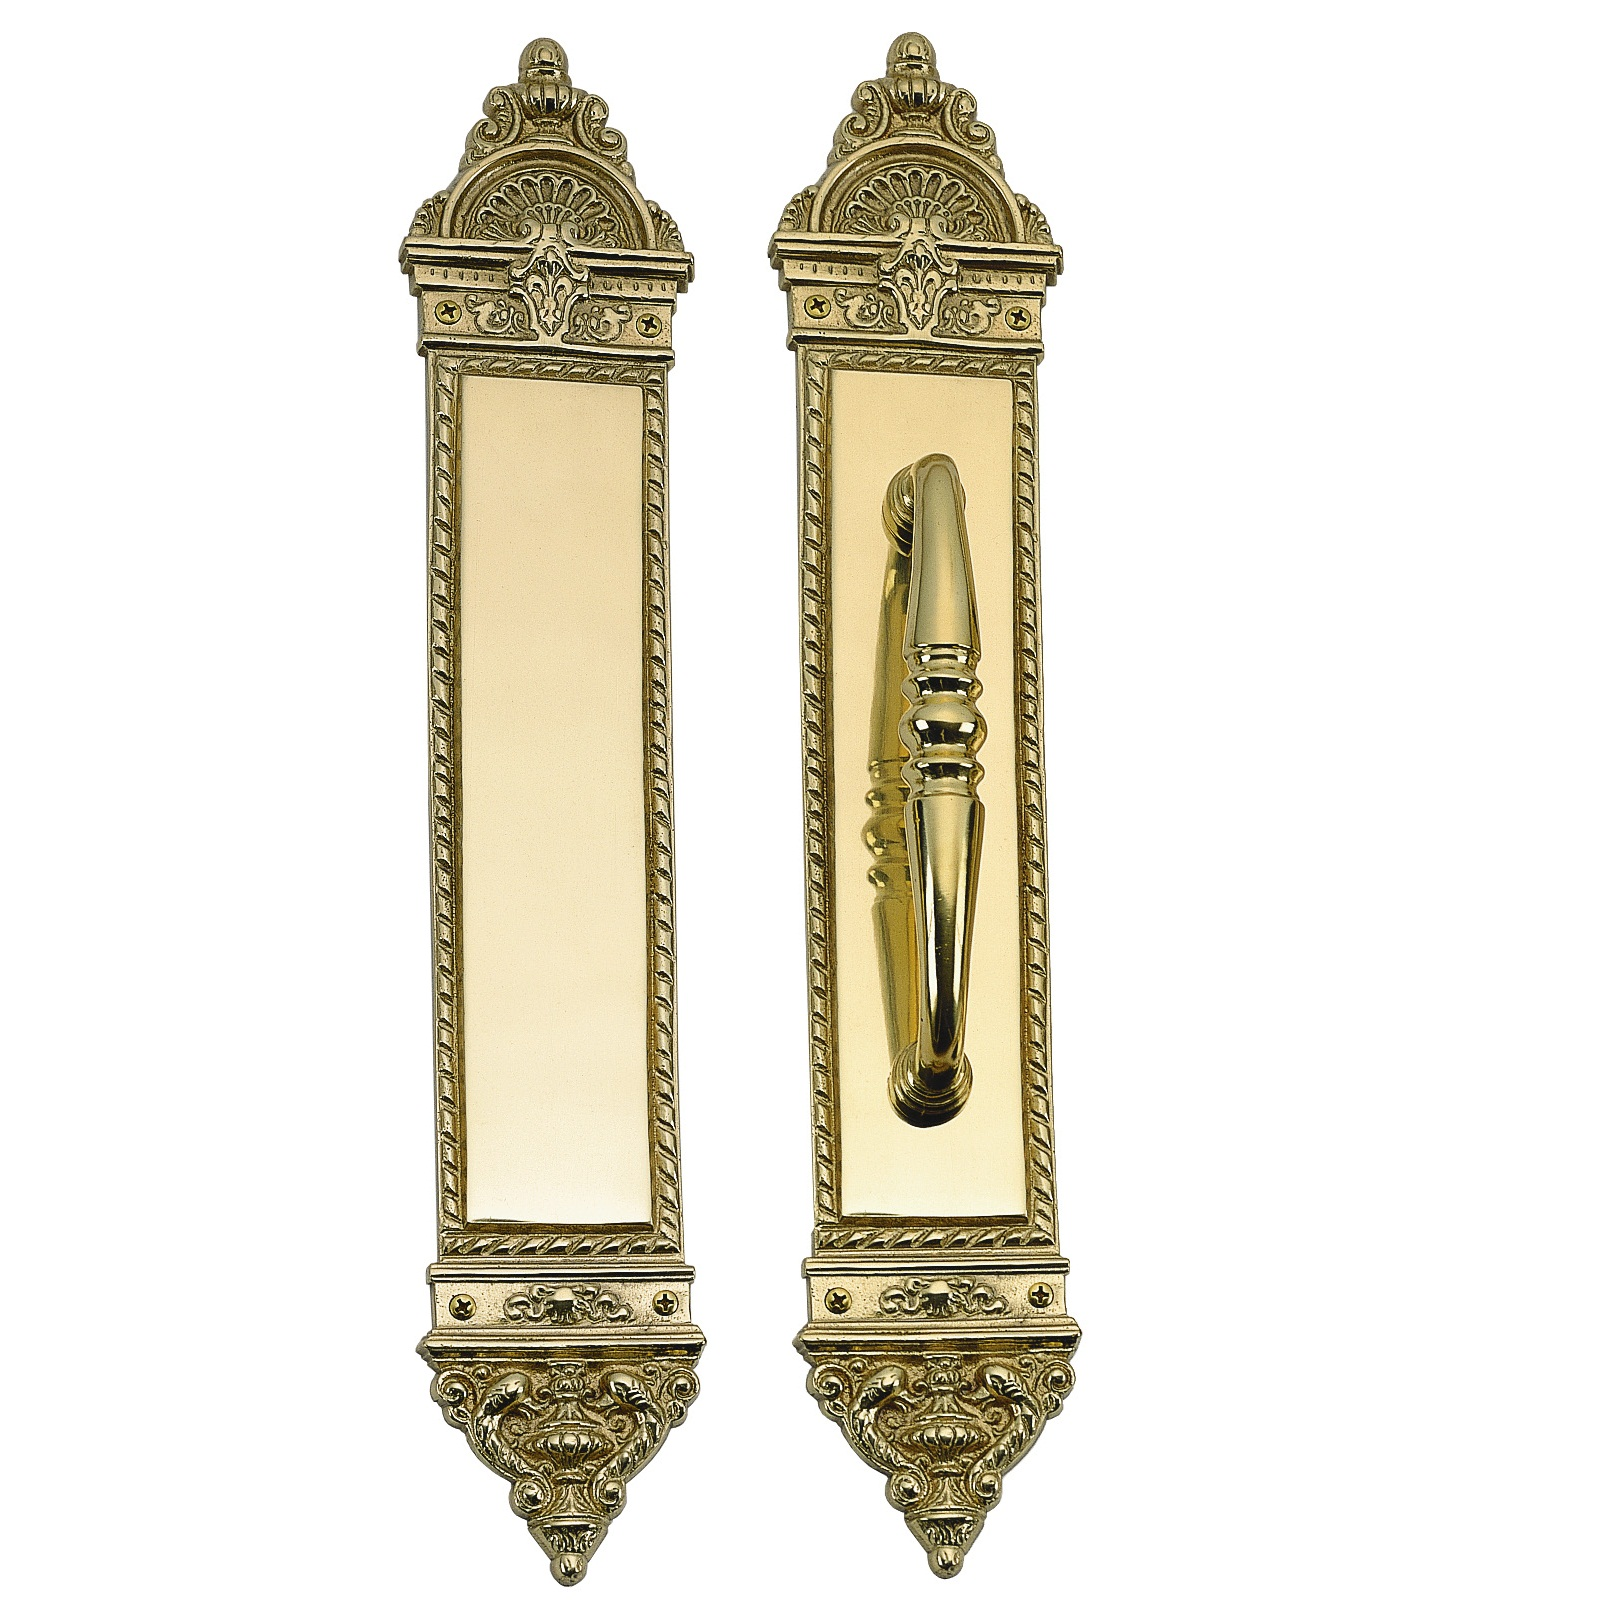 Brass Accents L'Enfant 16 1/4 Inch Push Plate - 3 x 16 1/4 Inch